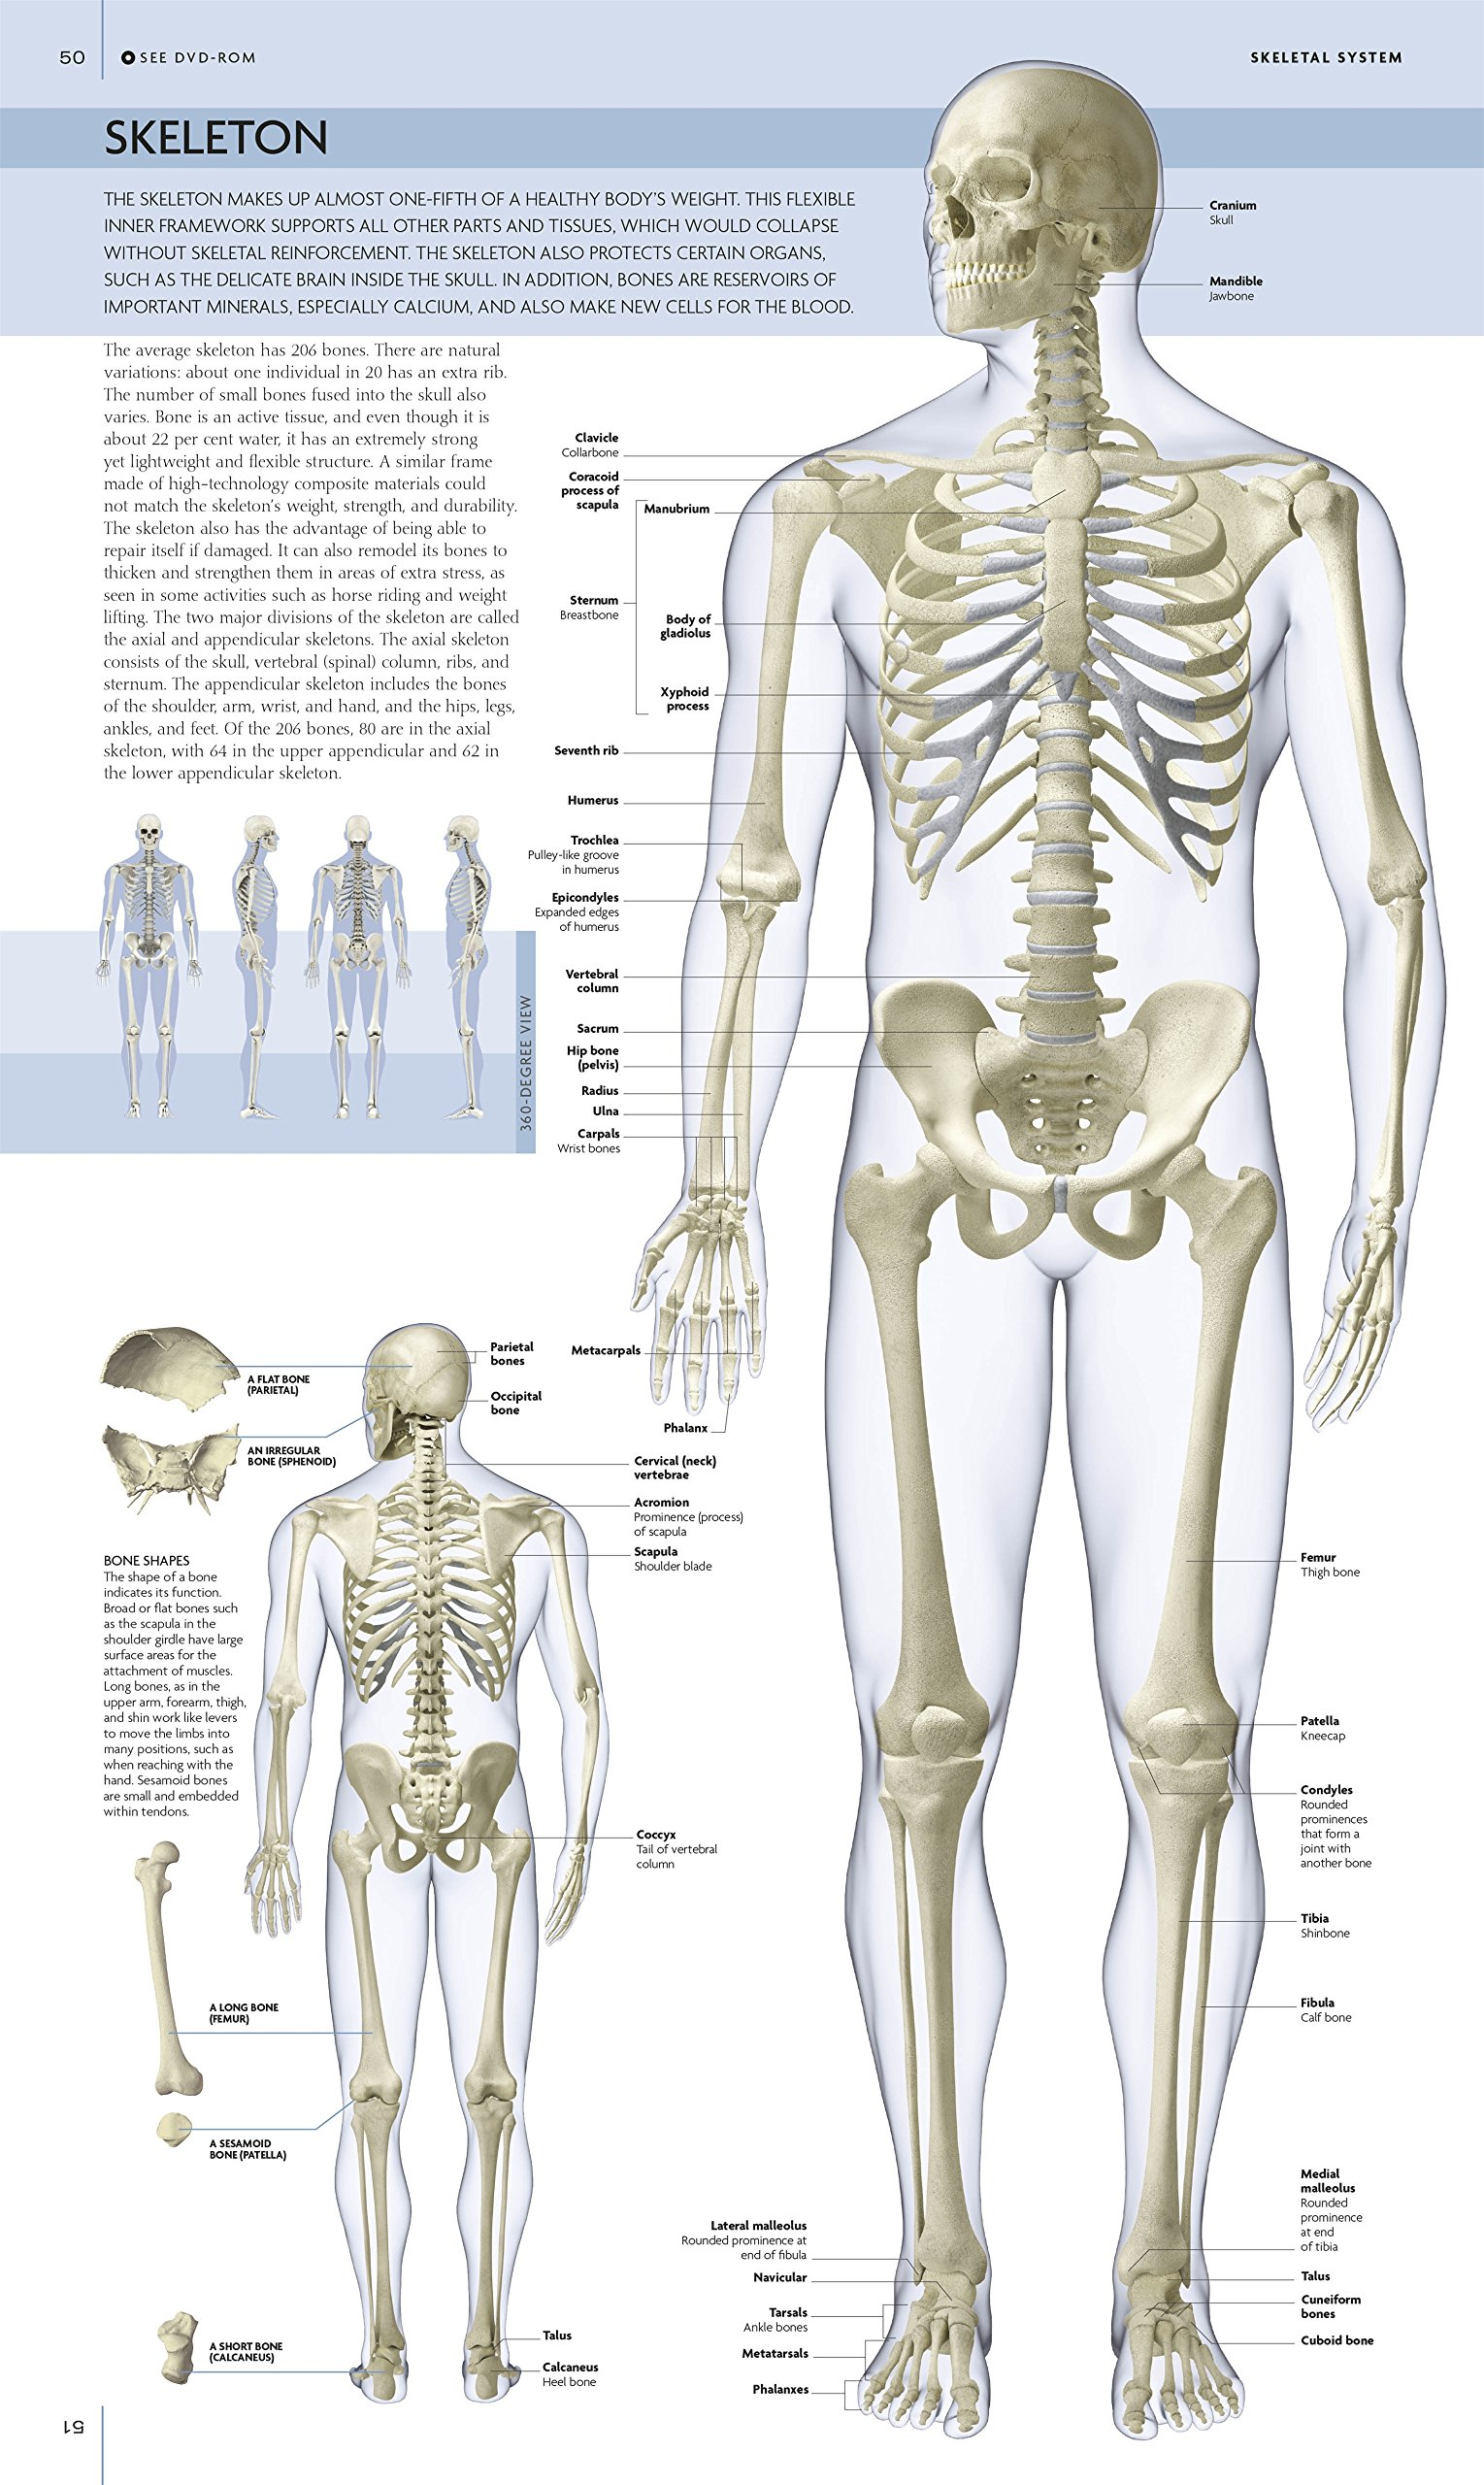 function of long bones in the body is to